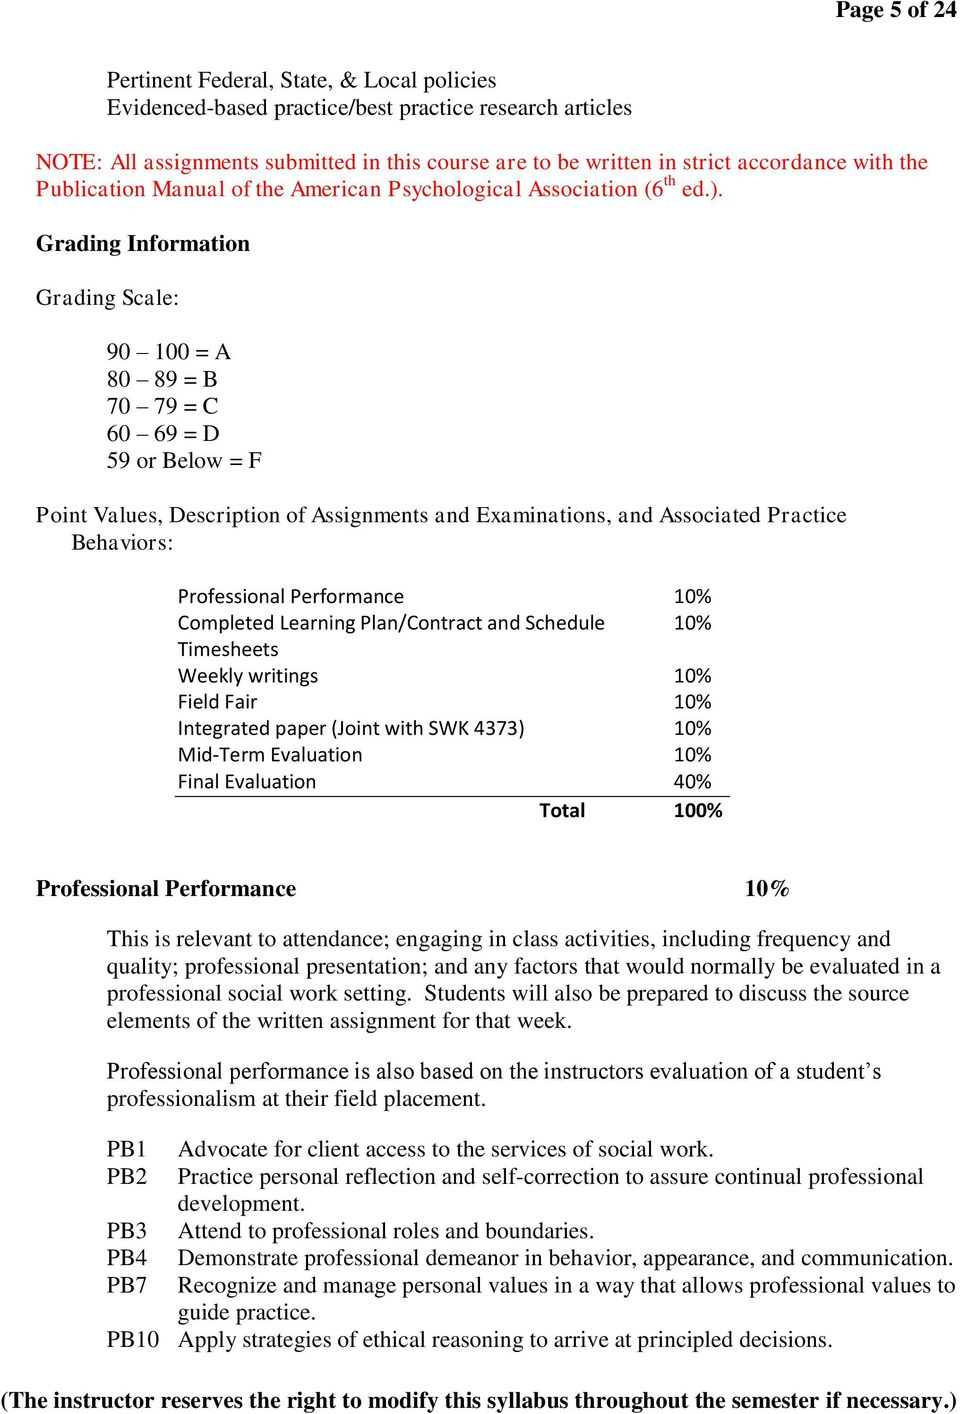 Grading Information Grading Scale: 90 100 = A 80 89 = B 70 79 = C 60 69 = D 59 or Below = F Point Values, Description of Assignments and Examinations, and Associated Practice Behaviors: Professional